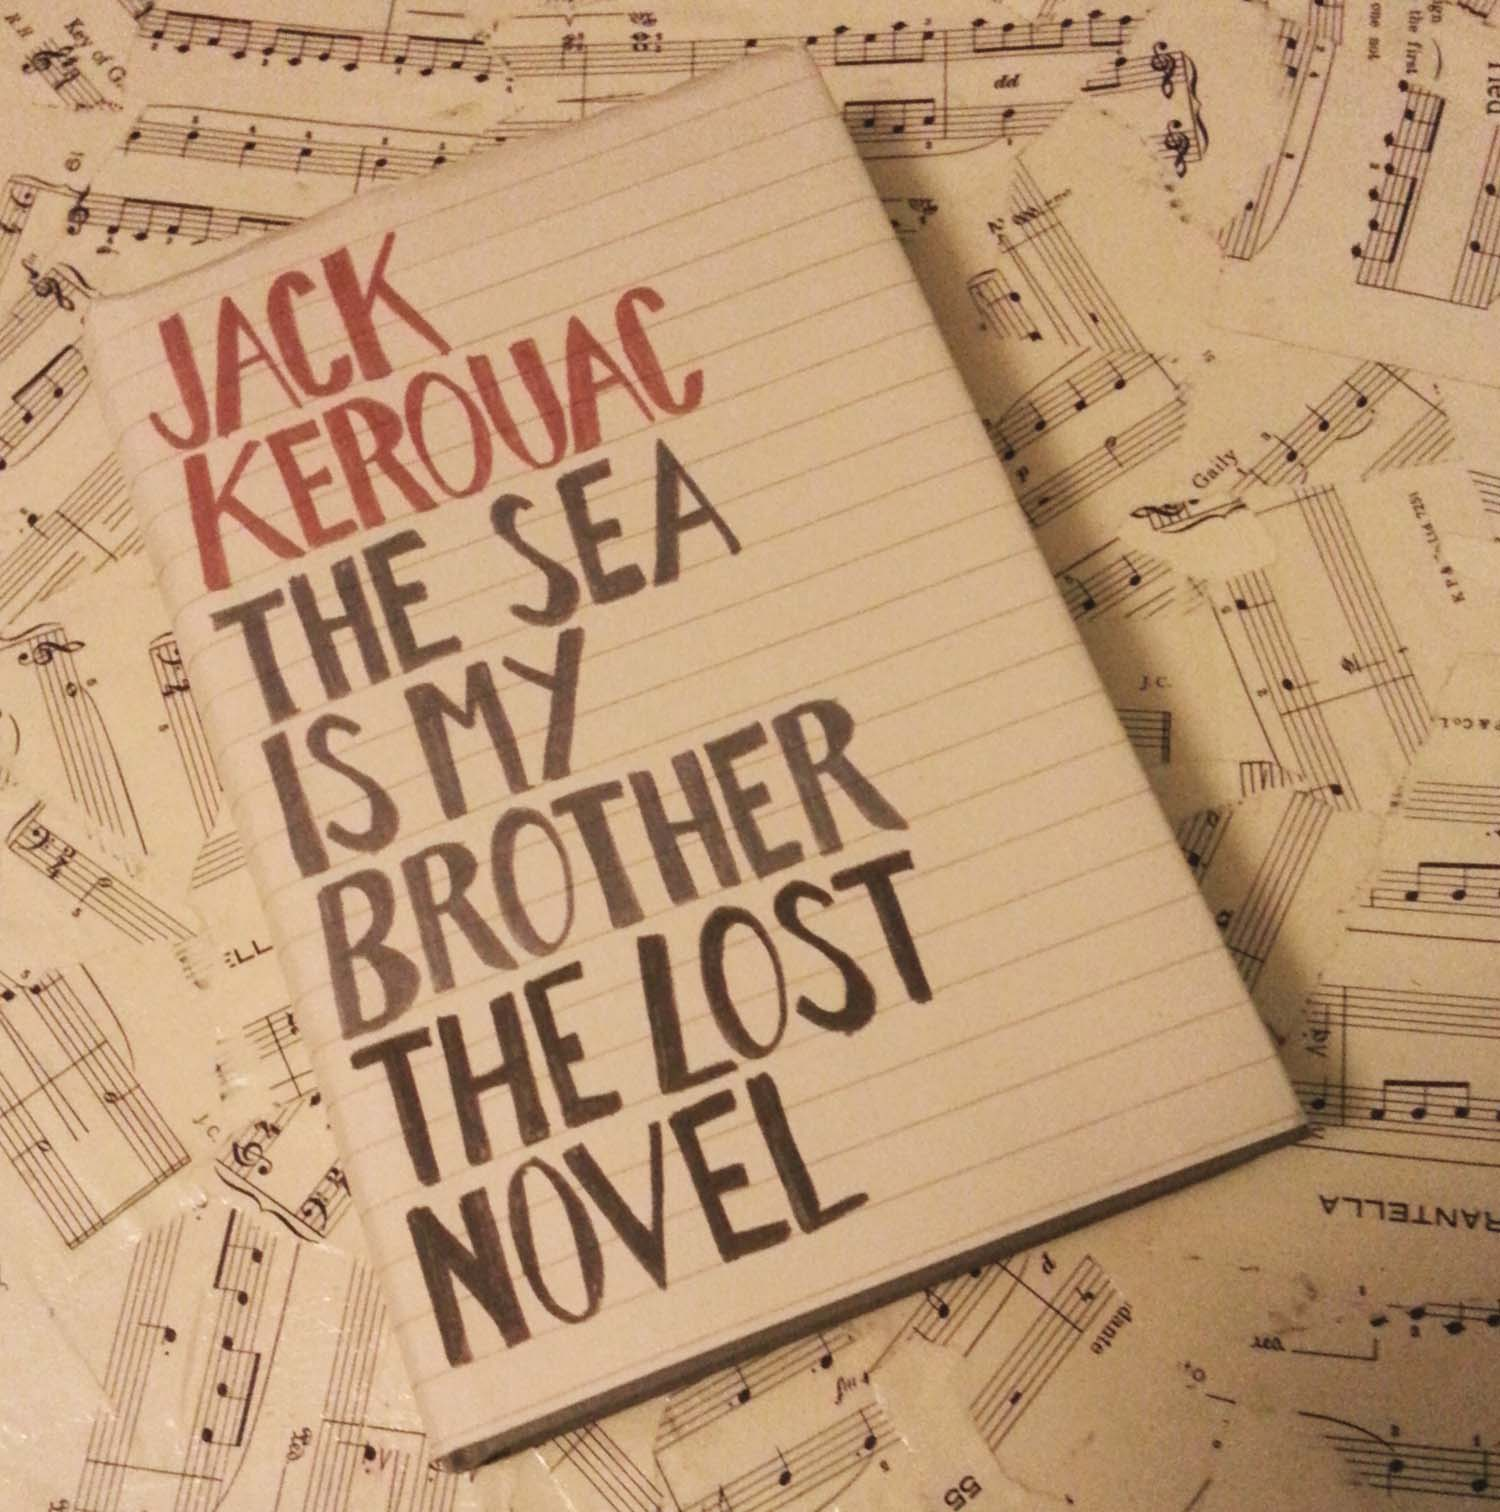 Jack Kerouac - The Lost Novel